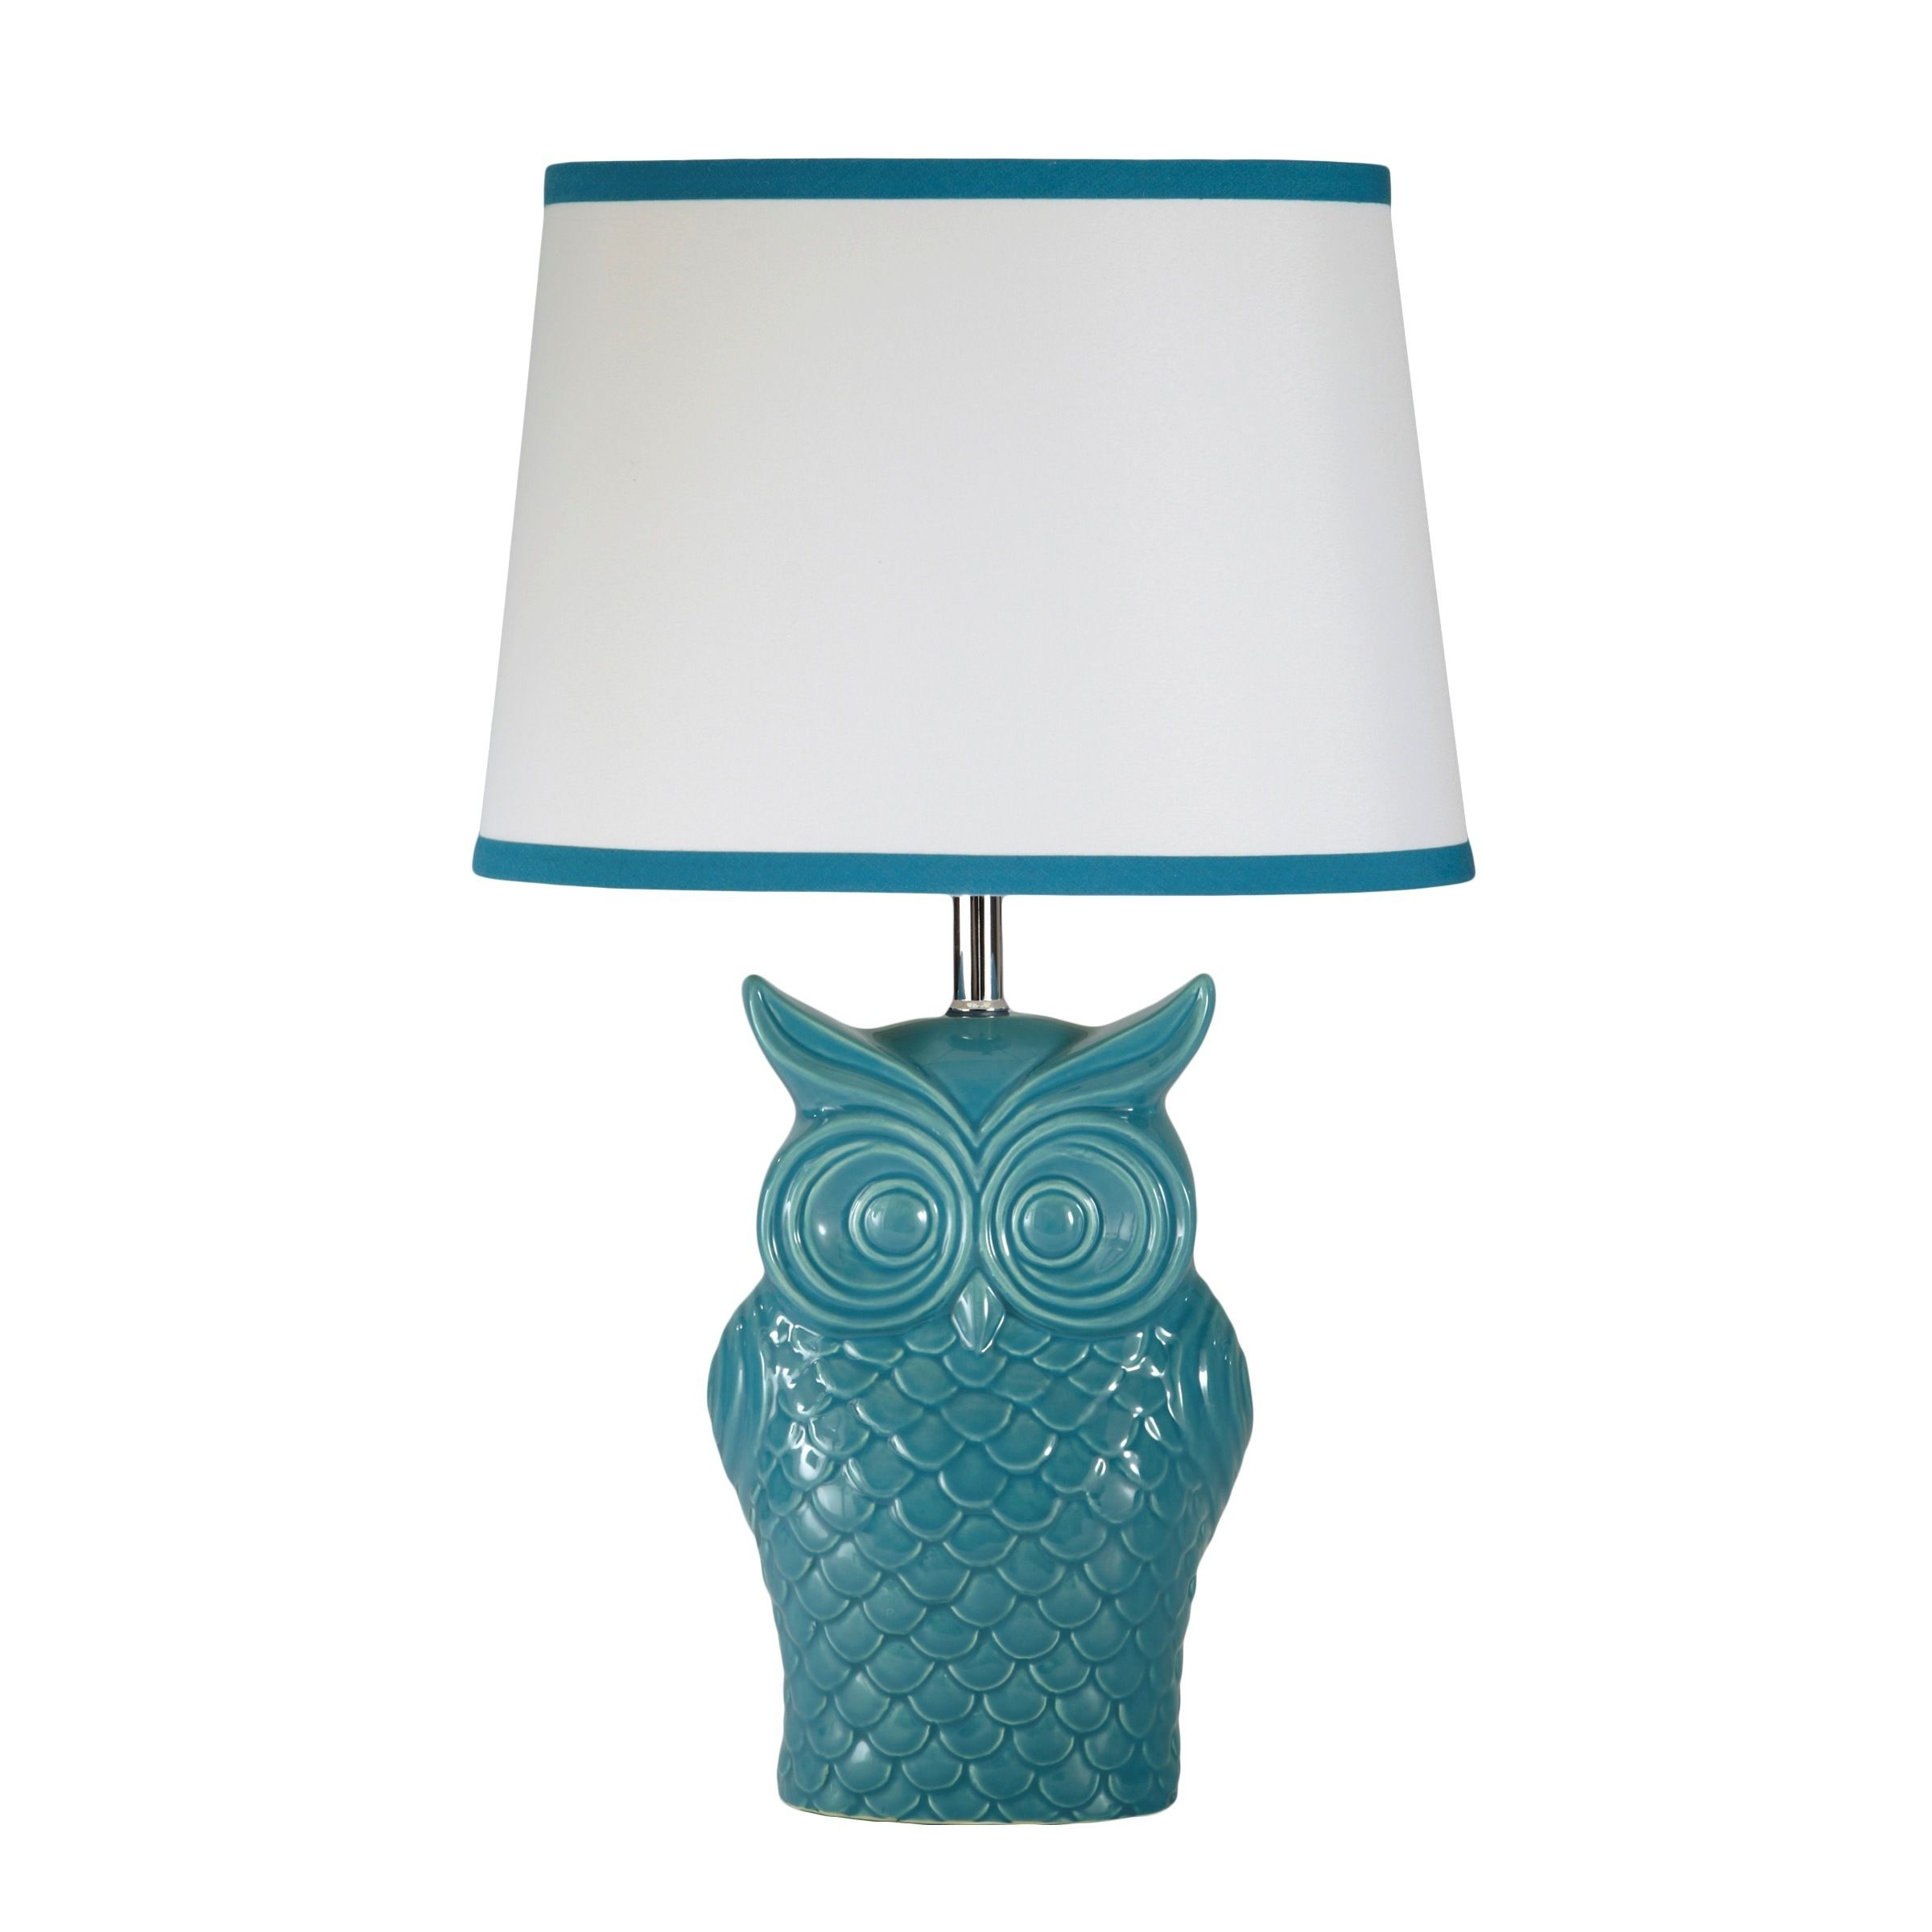 Modernize Your Home Decor With This Bright Table Lamp. Featuring A Colorful  Blue Ceramic Owl